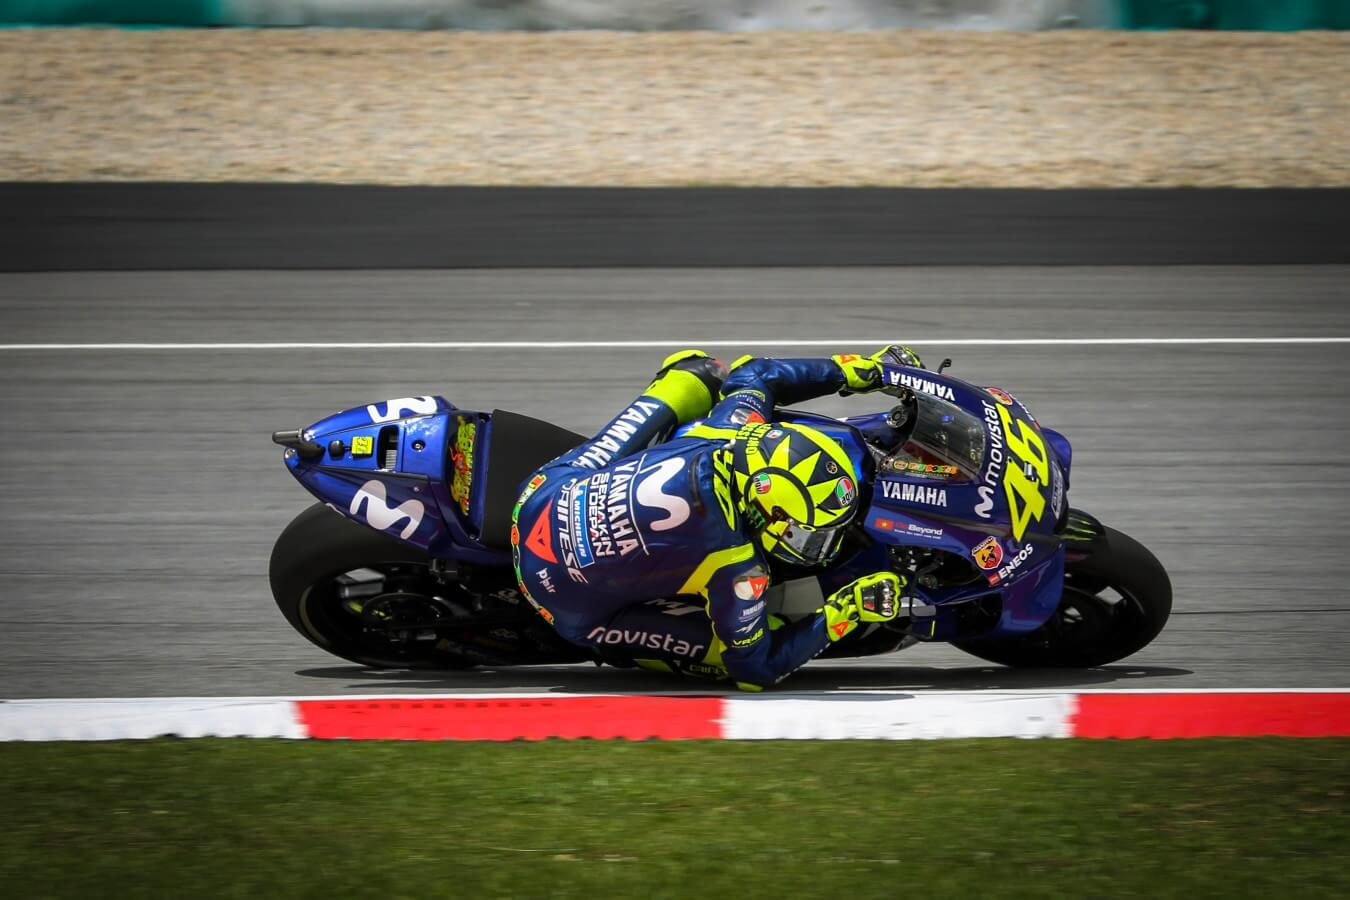 rossi - dominate the search results